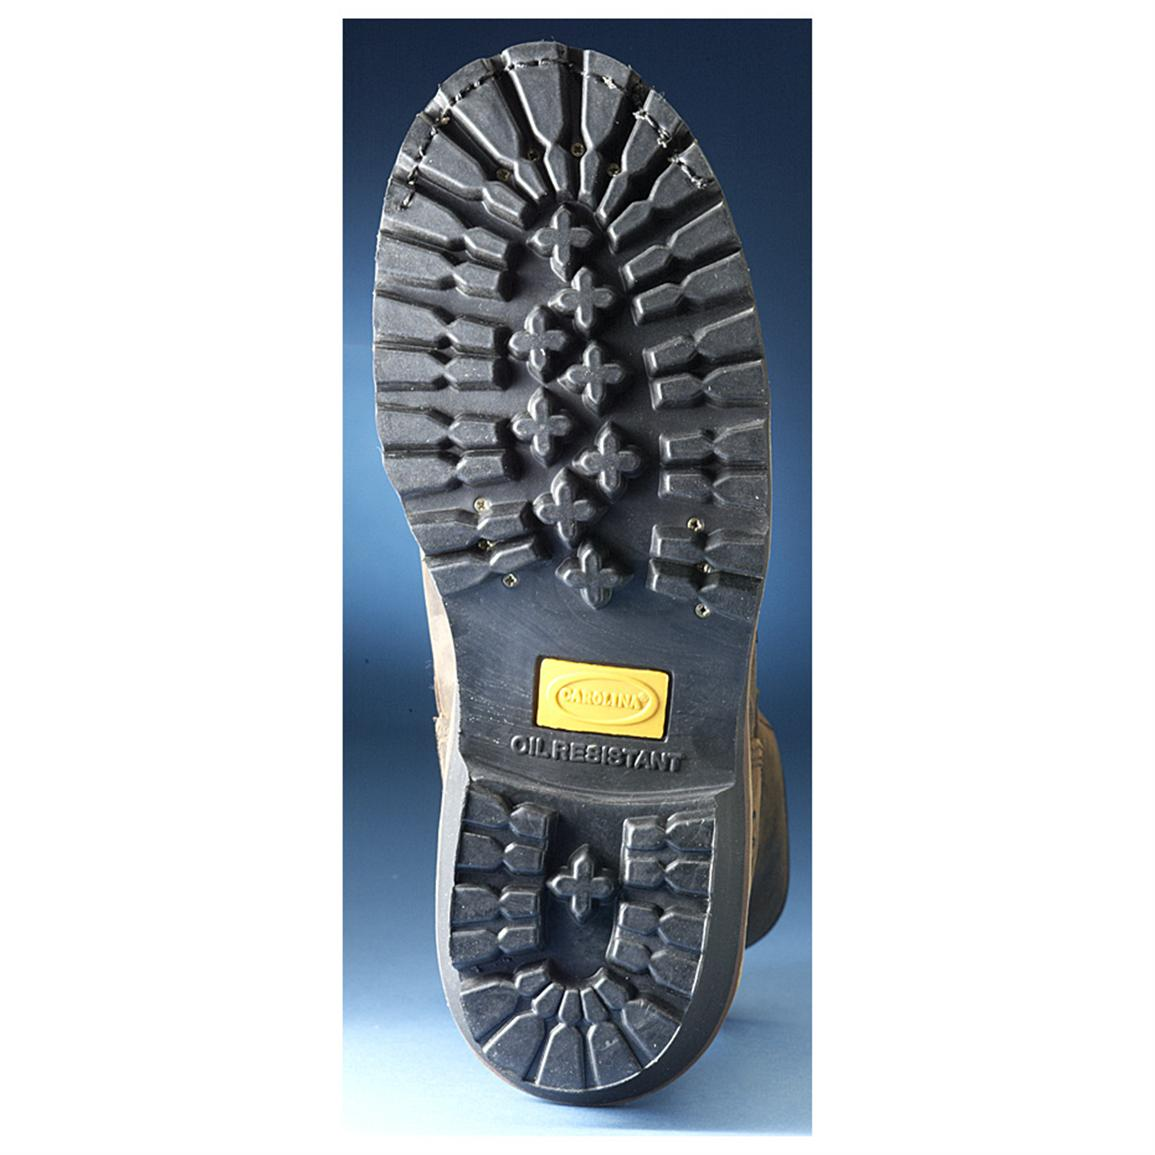 One-piece rubber lug outsole.